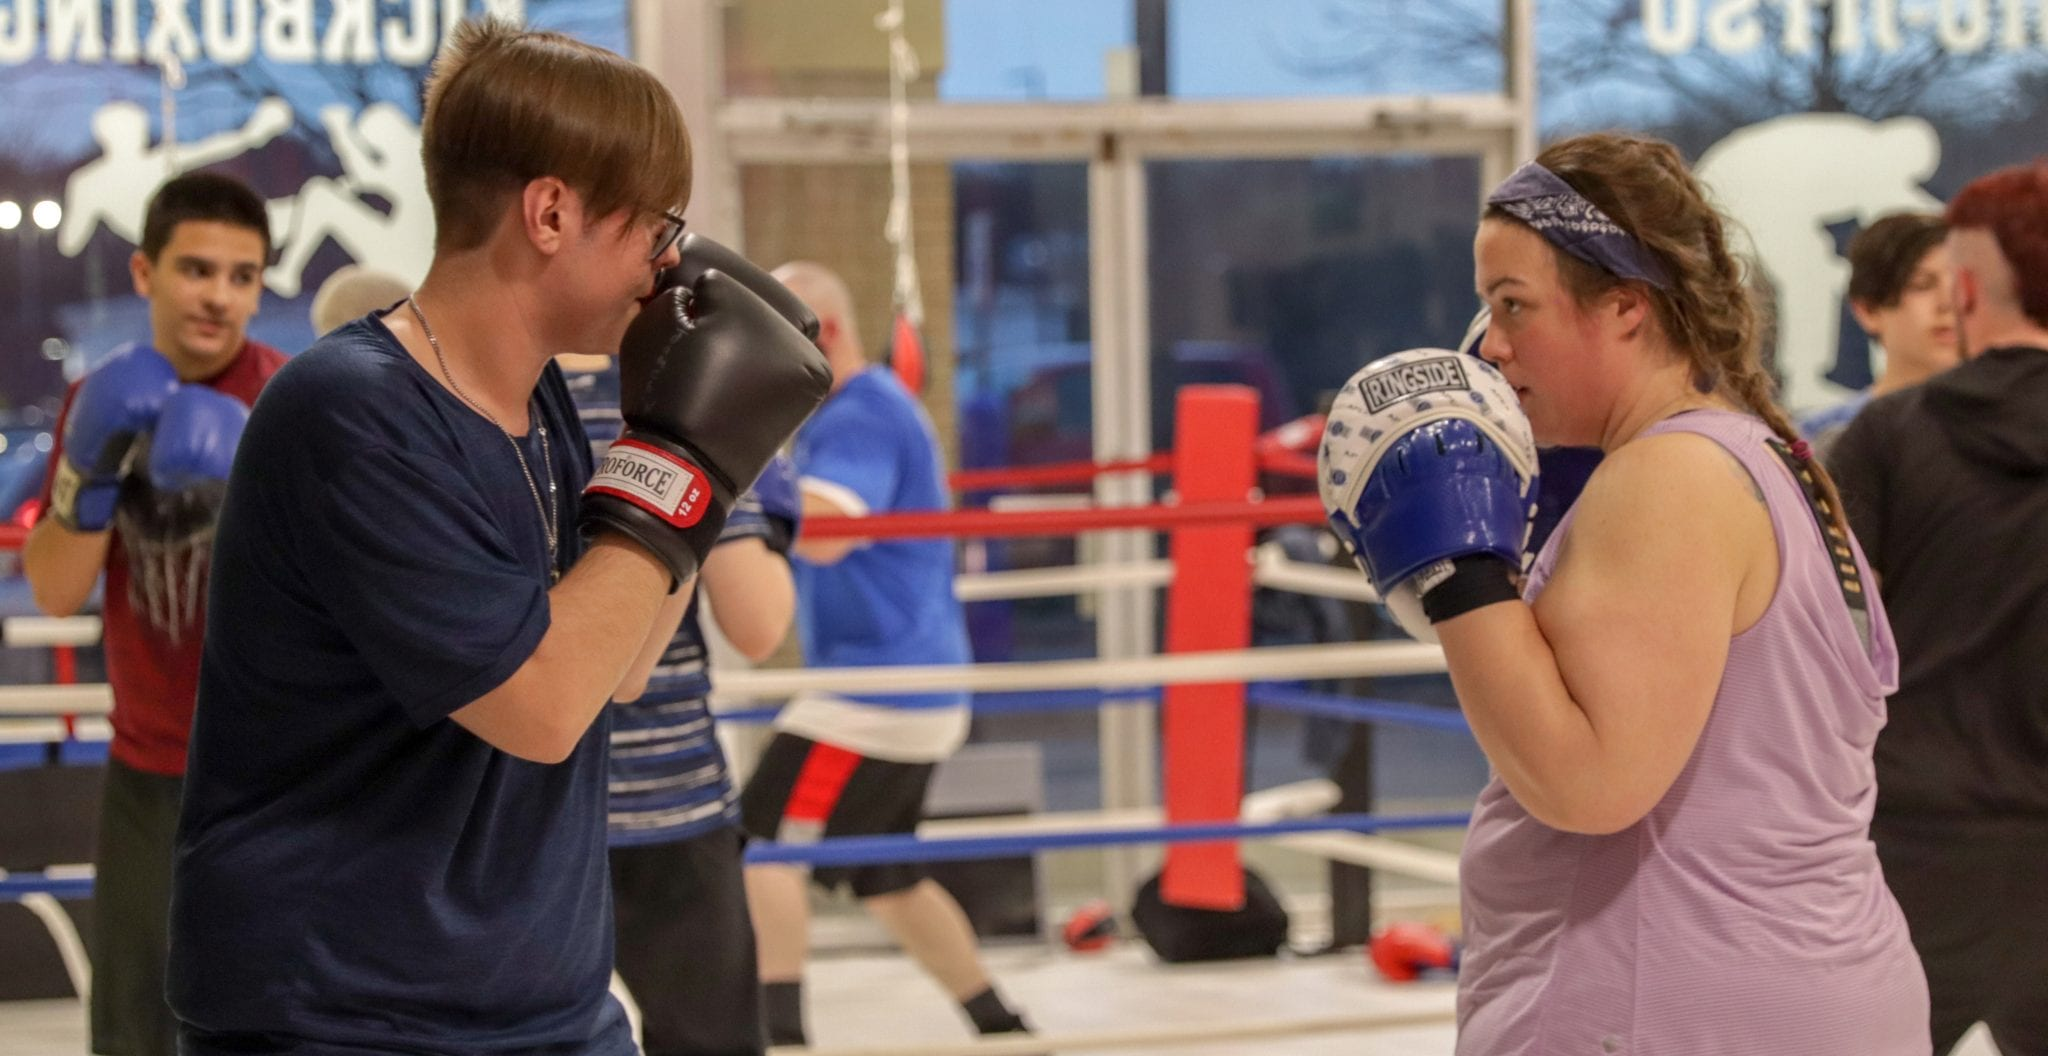 two young adults sparring